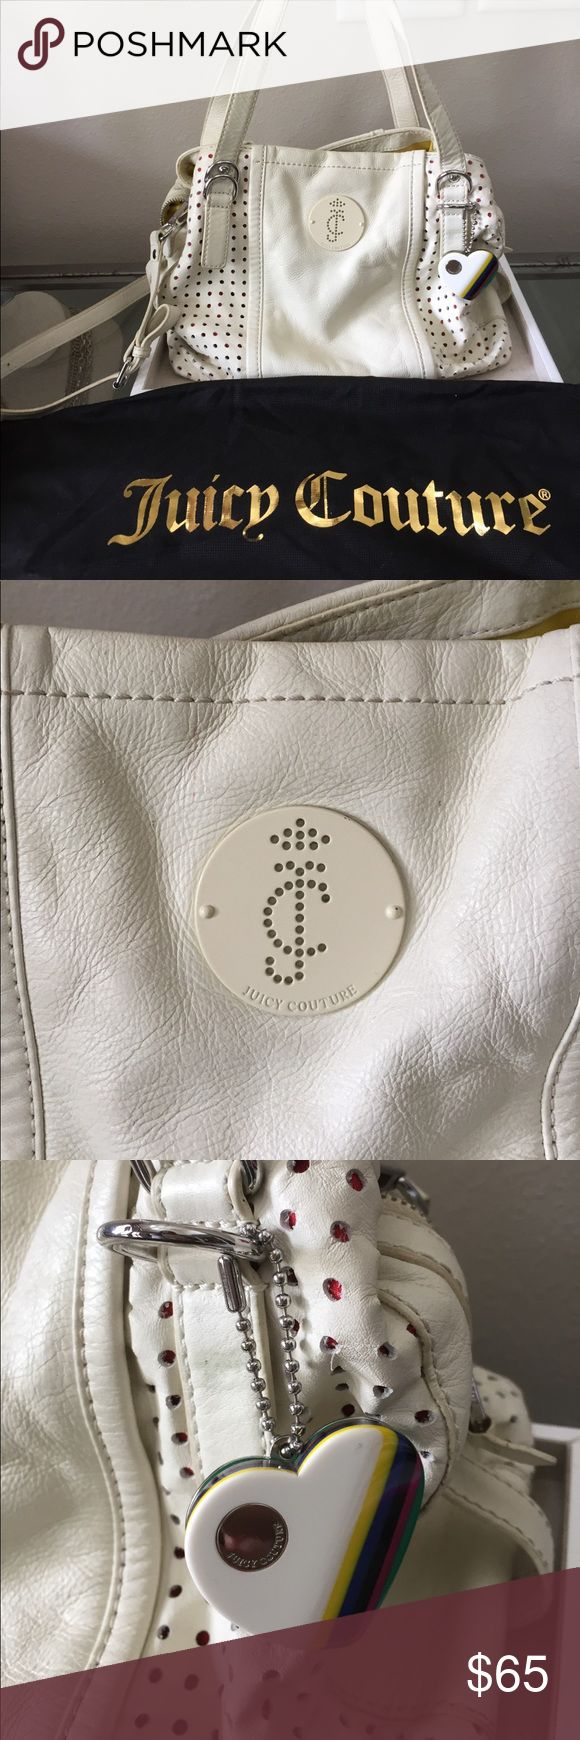 🎉SALE🎉 Juicy Couture handbag Fun perforated cream supple leather handbag no rips or tears in leather or interior linings. Only minor marks- good wiping would improve- see pics or just ask for more details 😊 Comes w dust bag and detachable cross-body strap. Smoke free home. 12Lx6Wx10H(height) Juicy Couture Bags Totes